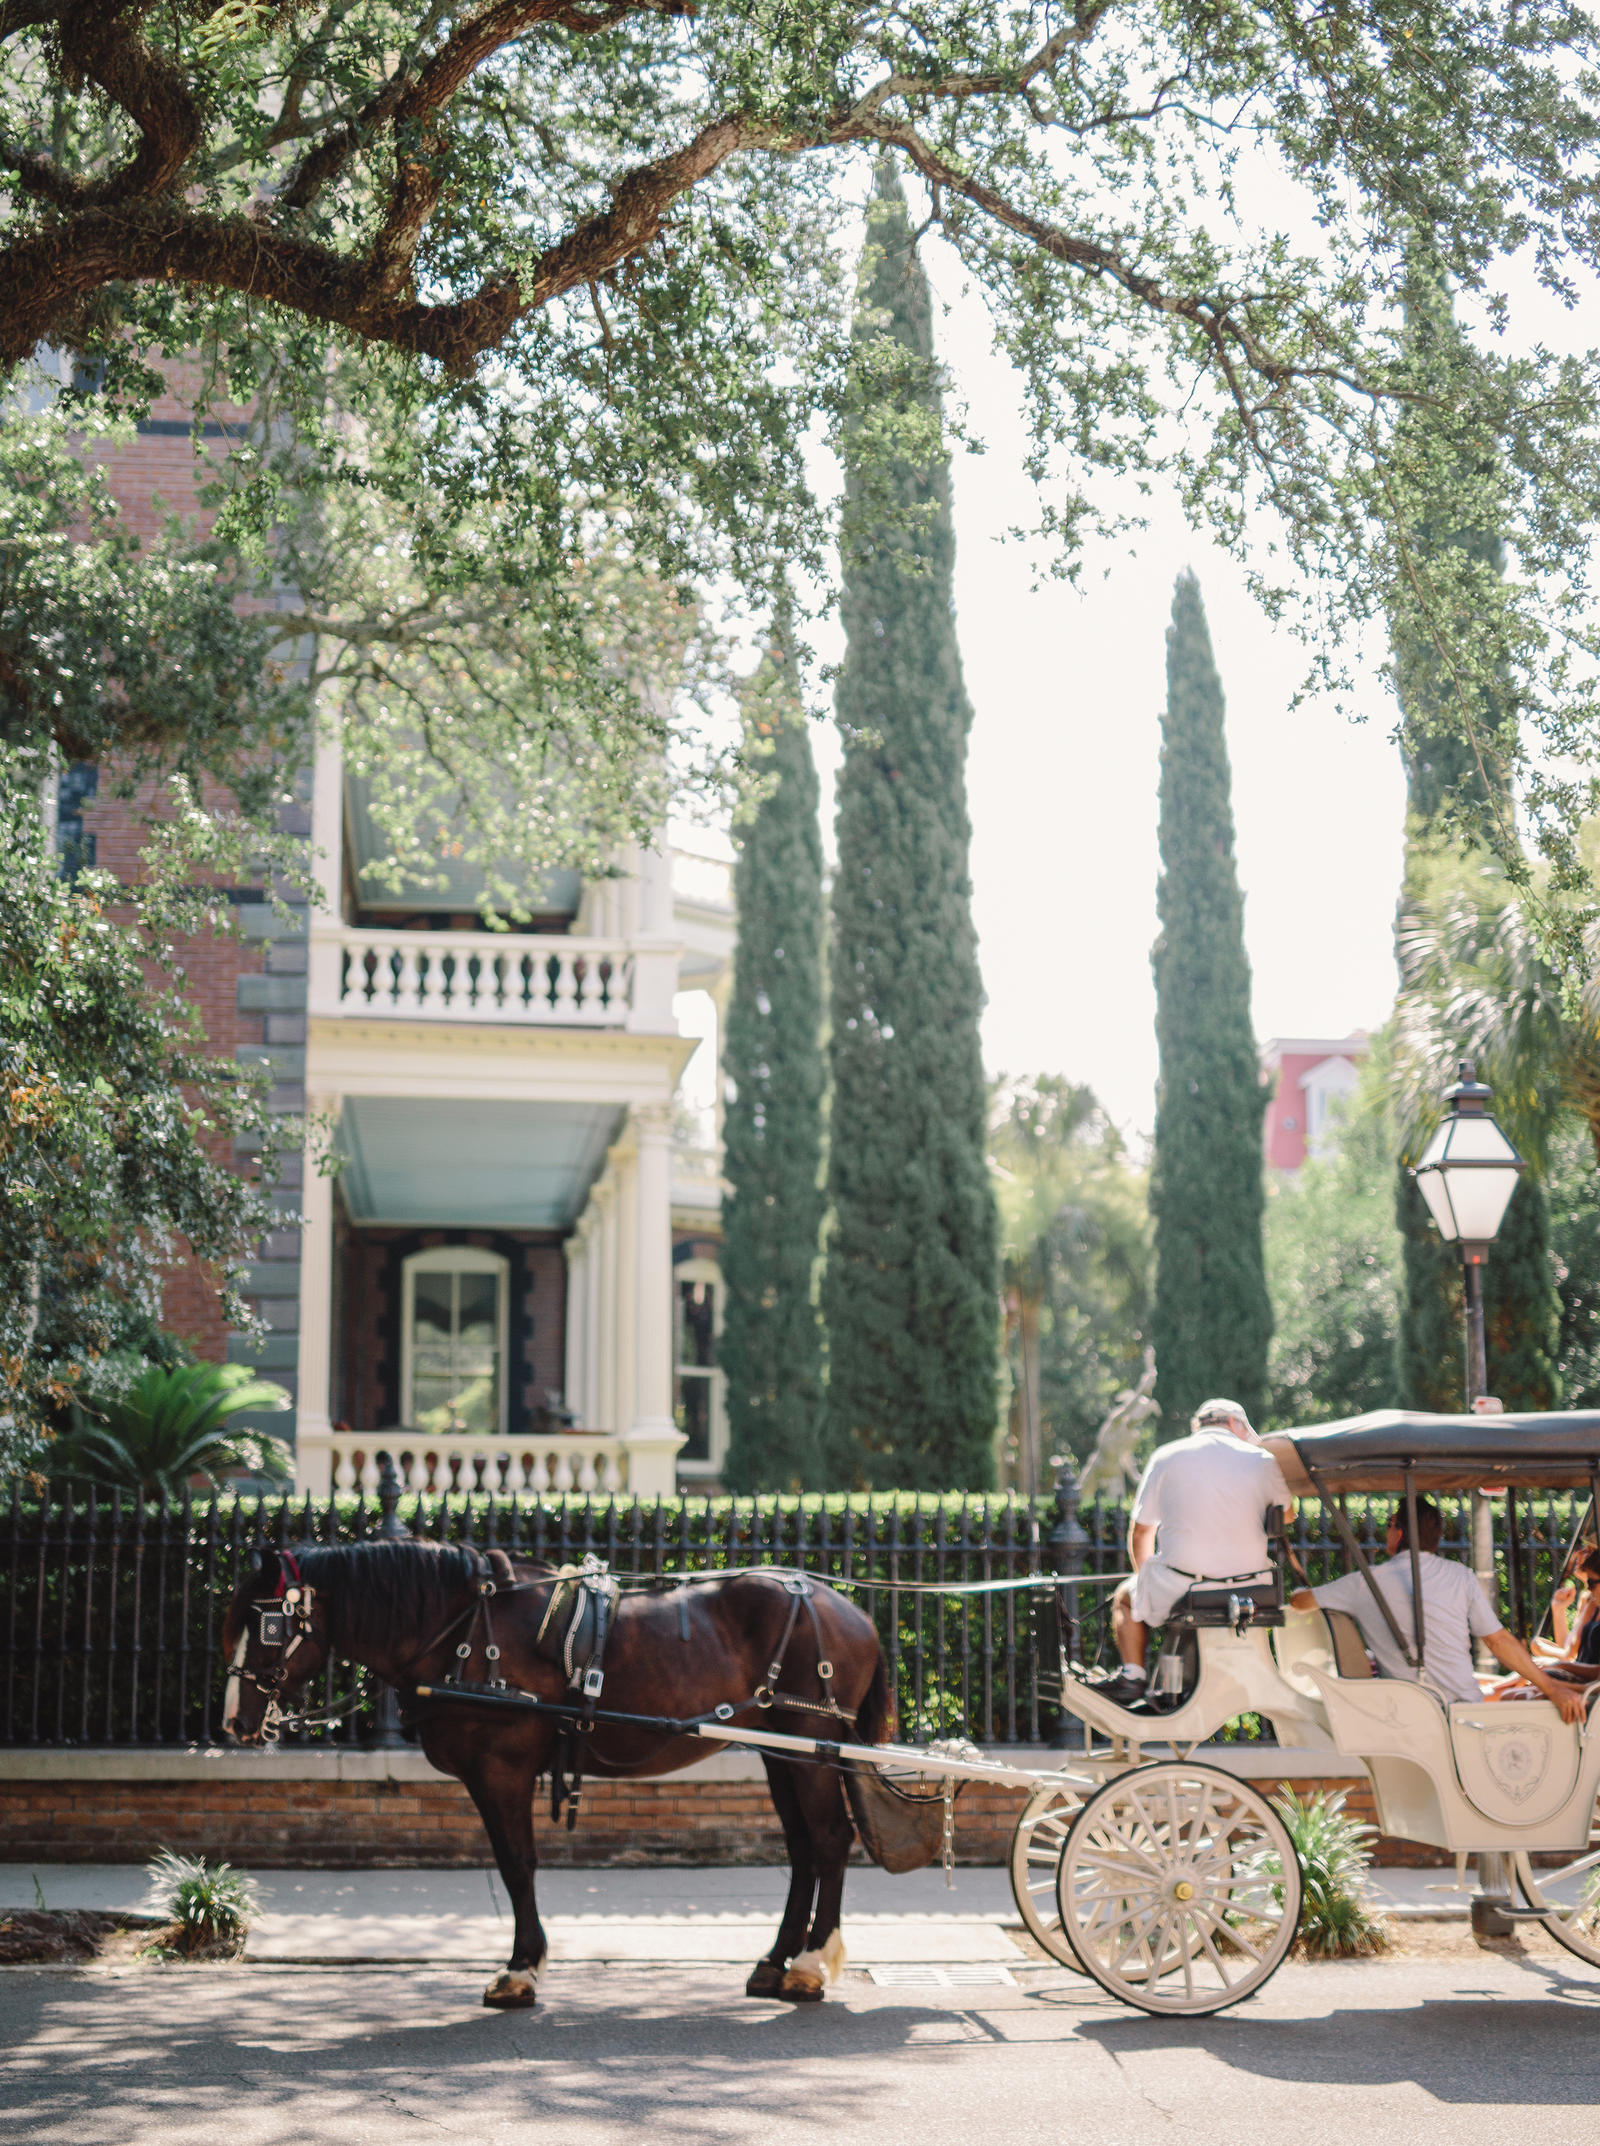 Lifestyle Photography | Atlanta, GA | A horse drawn carriage in a street.